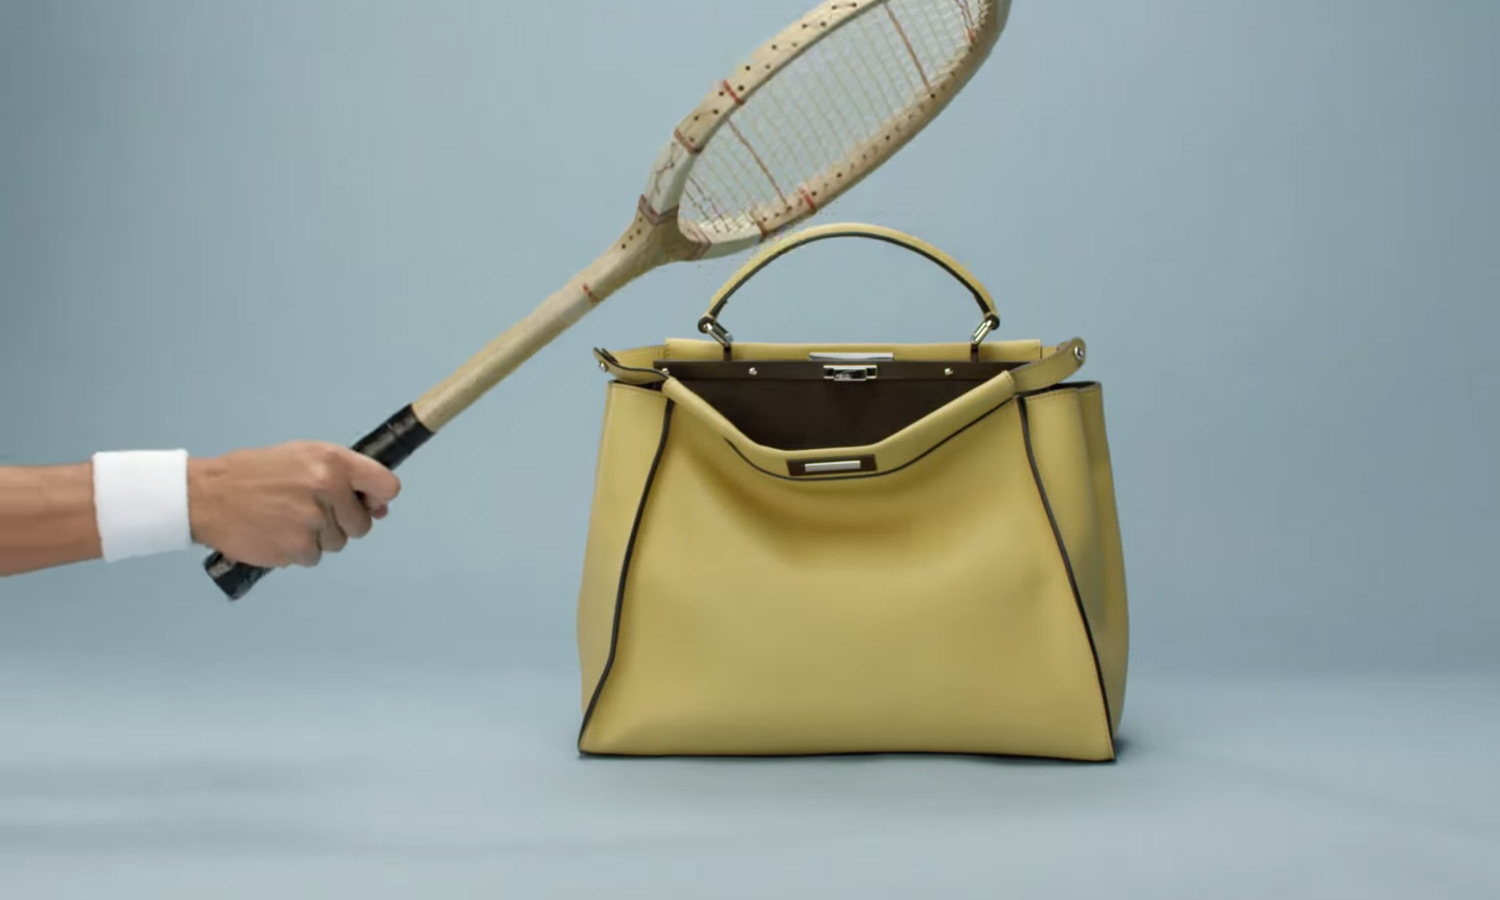 fendi-micro-bag-video-2015-feat